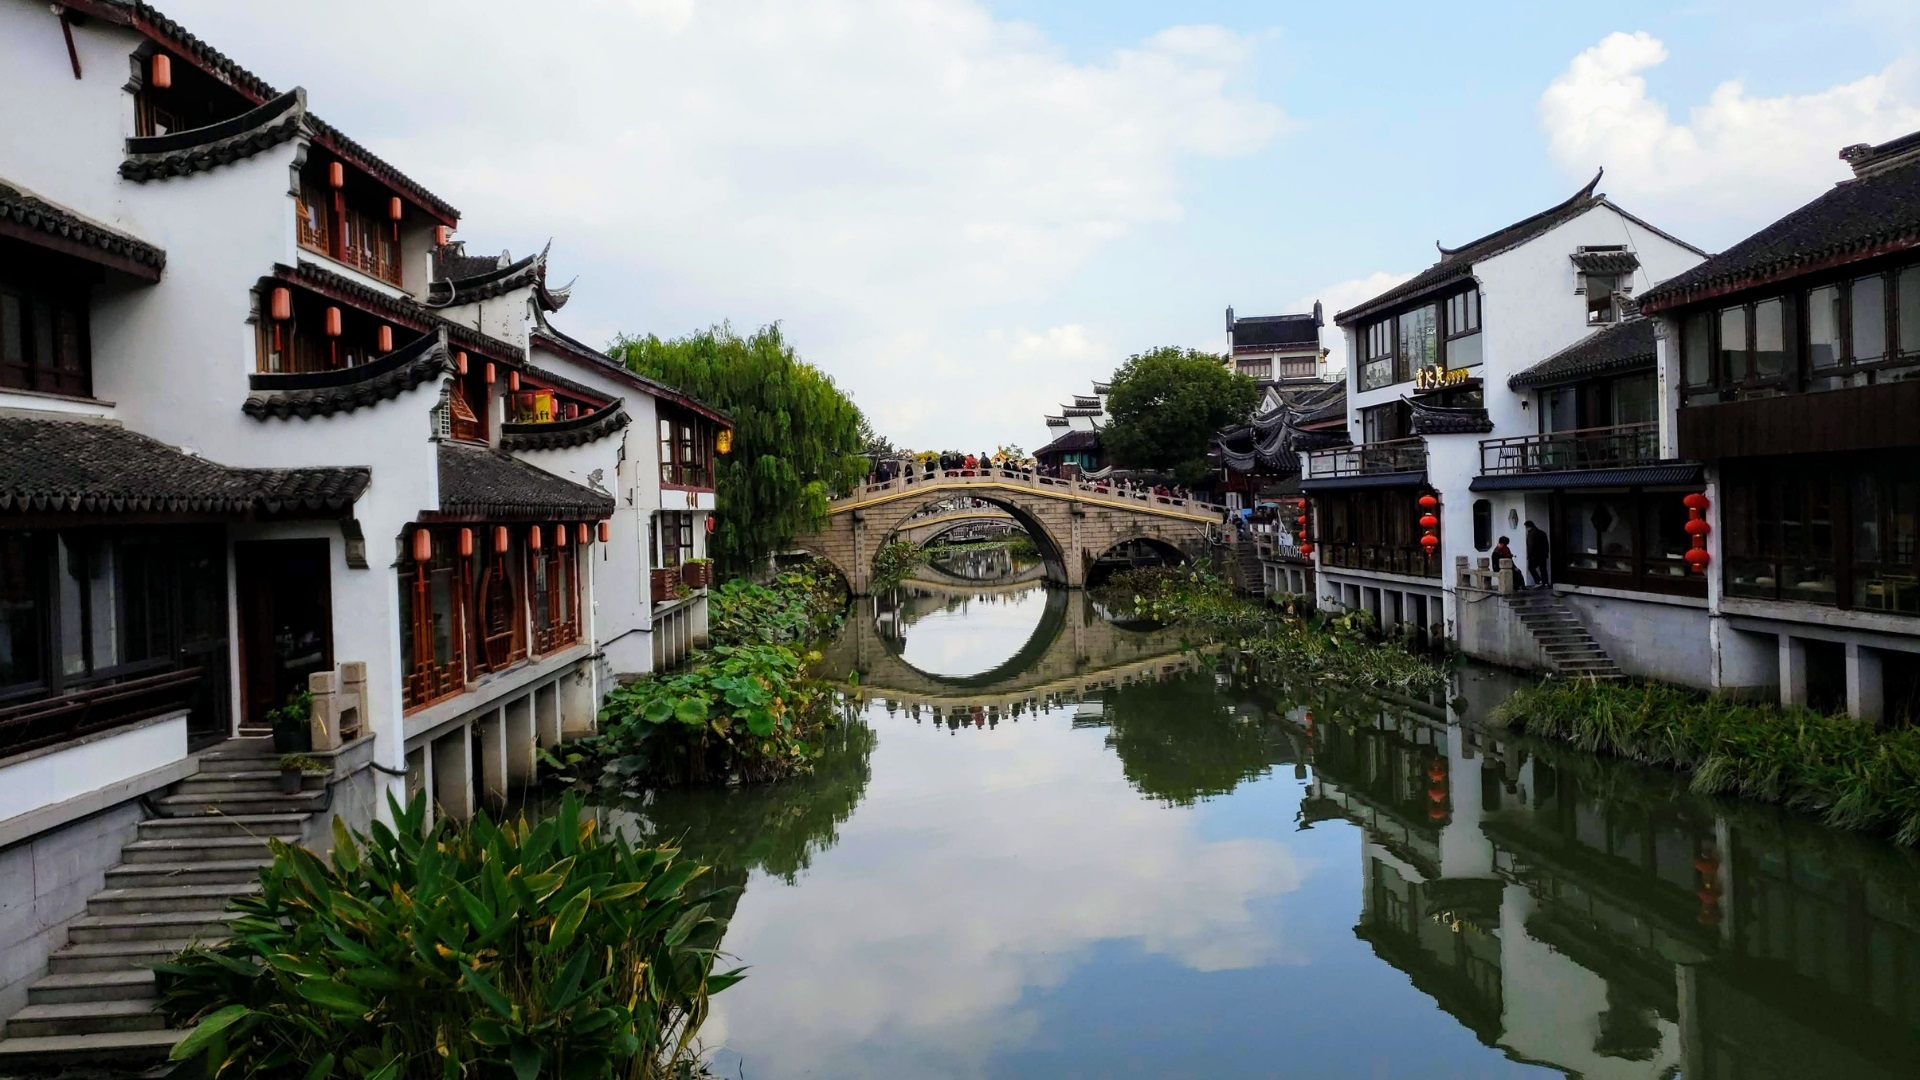 Qibao Featured Image: Image of Qibao Ancient Town along the Puhui River